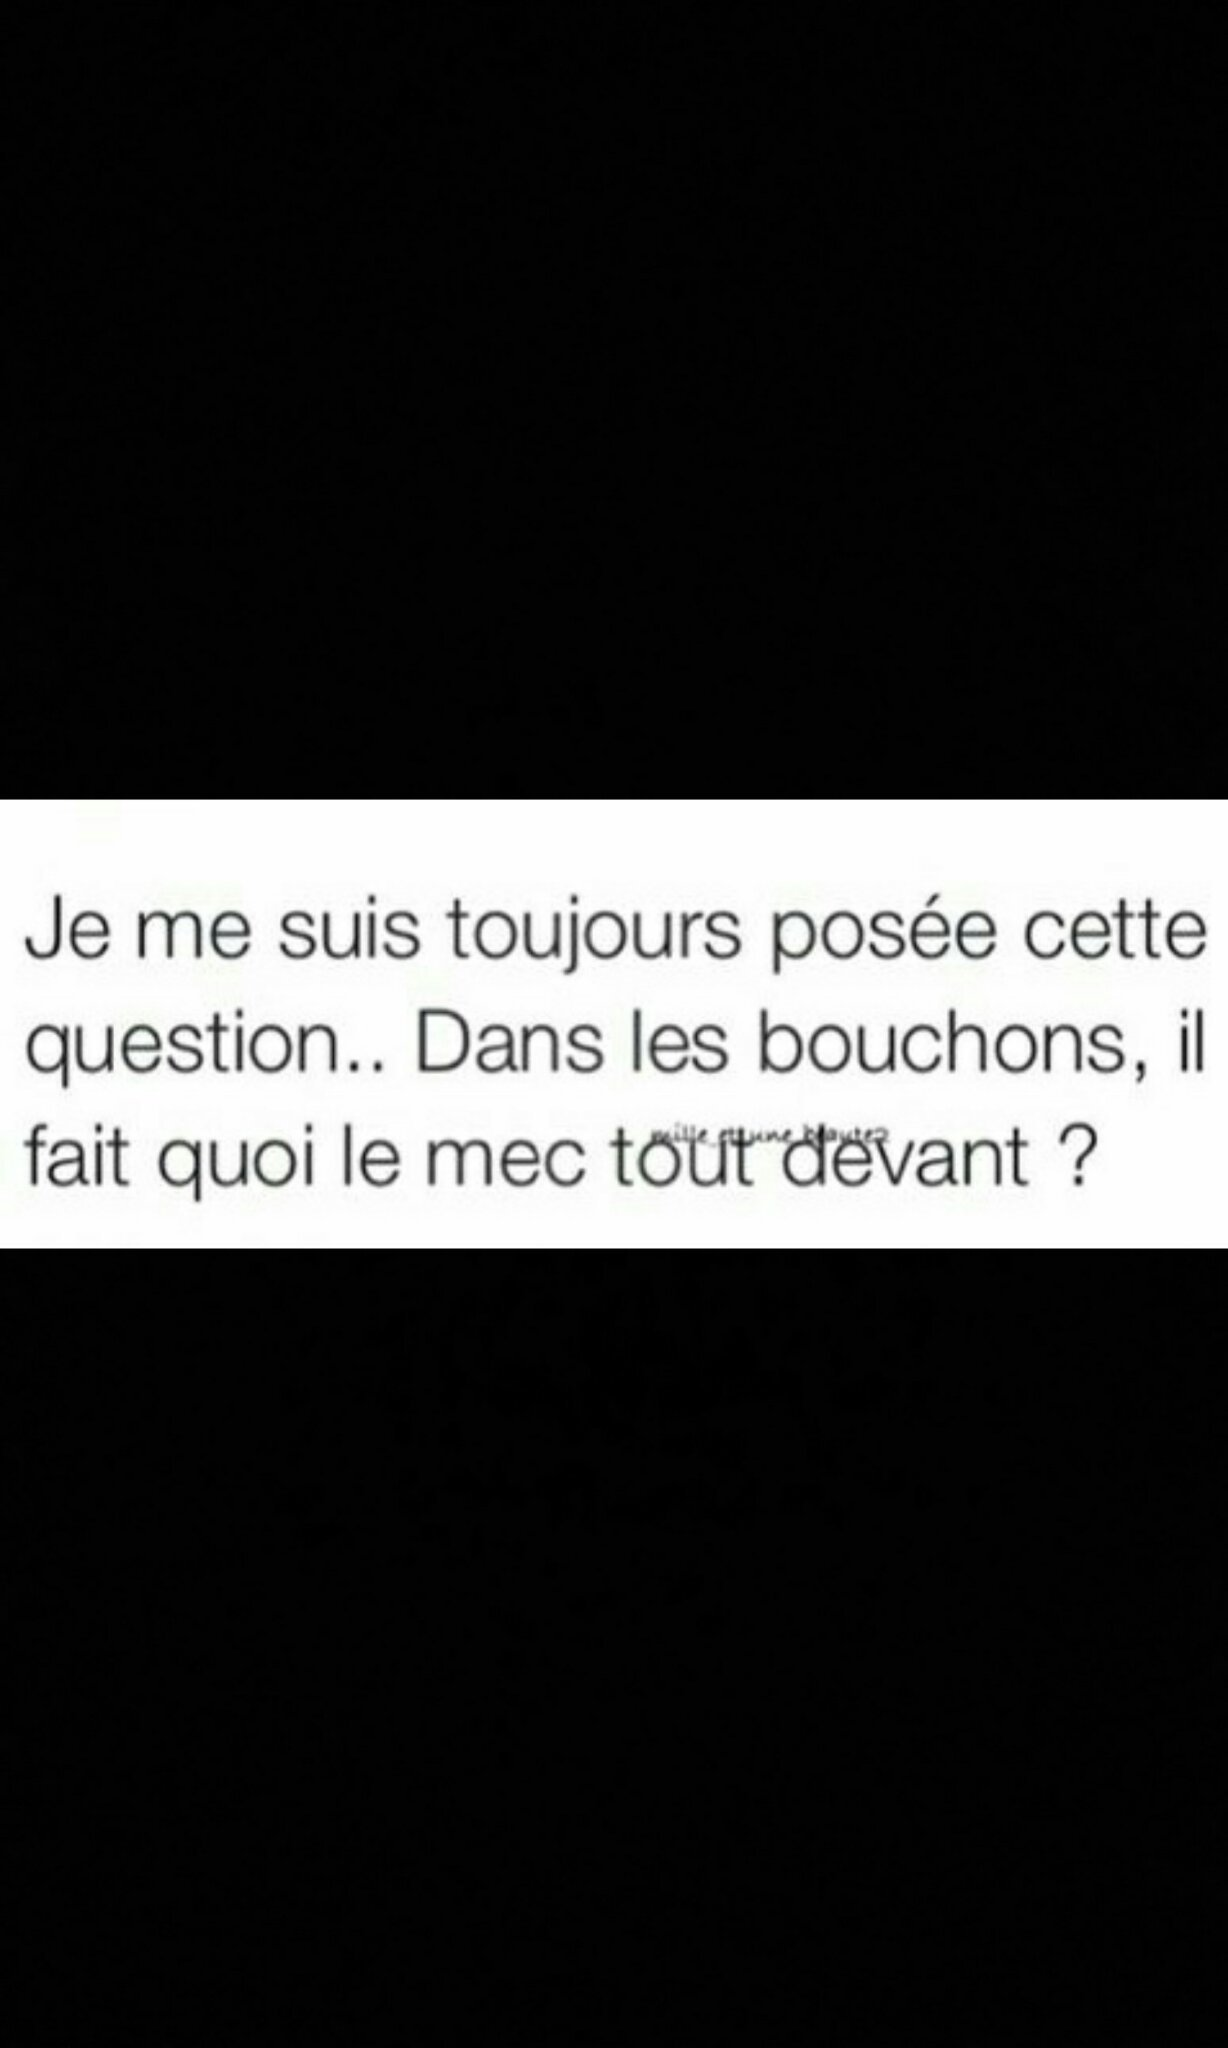 Tel est la question... - meme